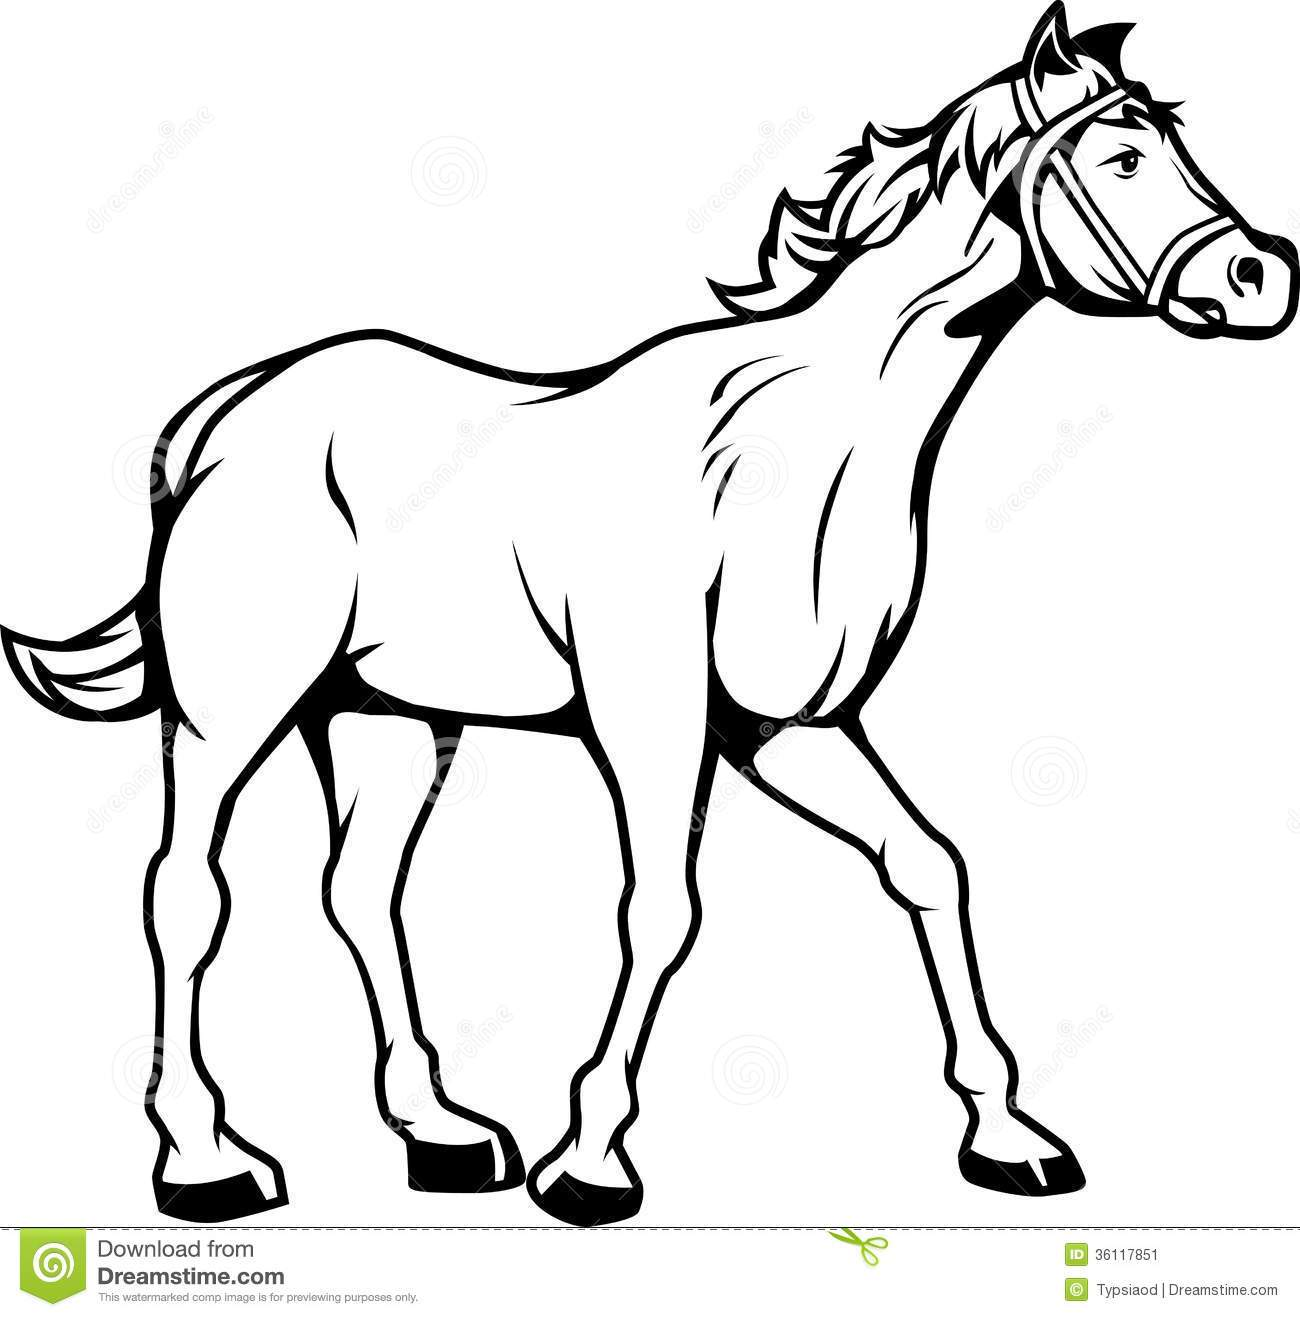 Horses black and white clipart clip black and white stock Black and white clipart of horse 3 » Clipart Portal clip black and white stock